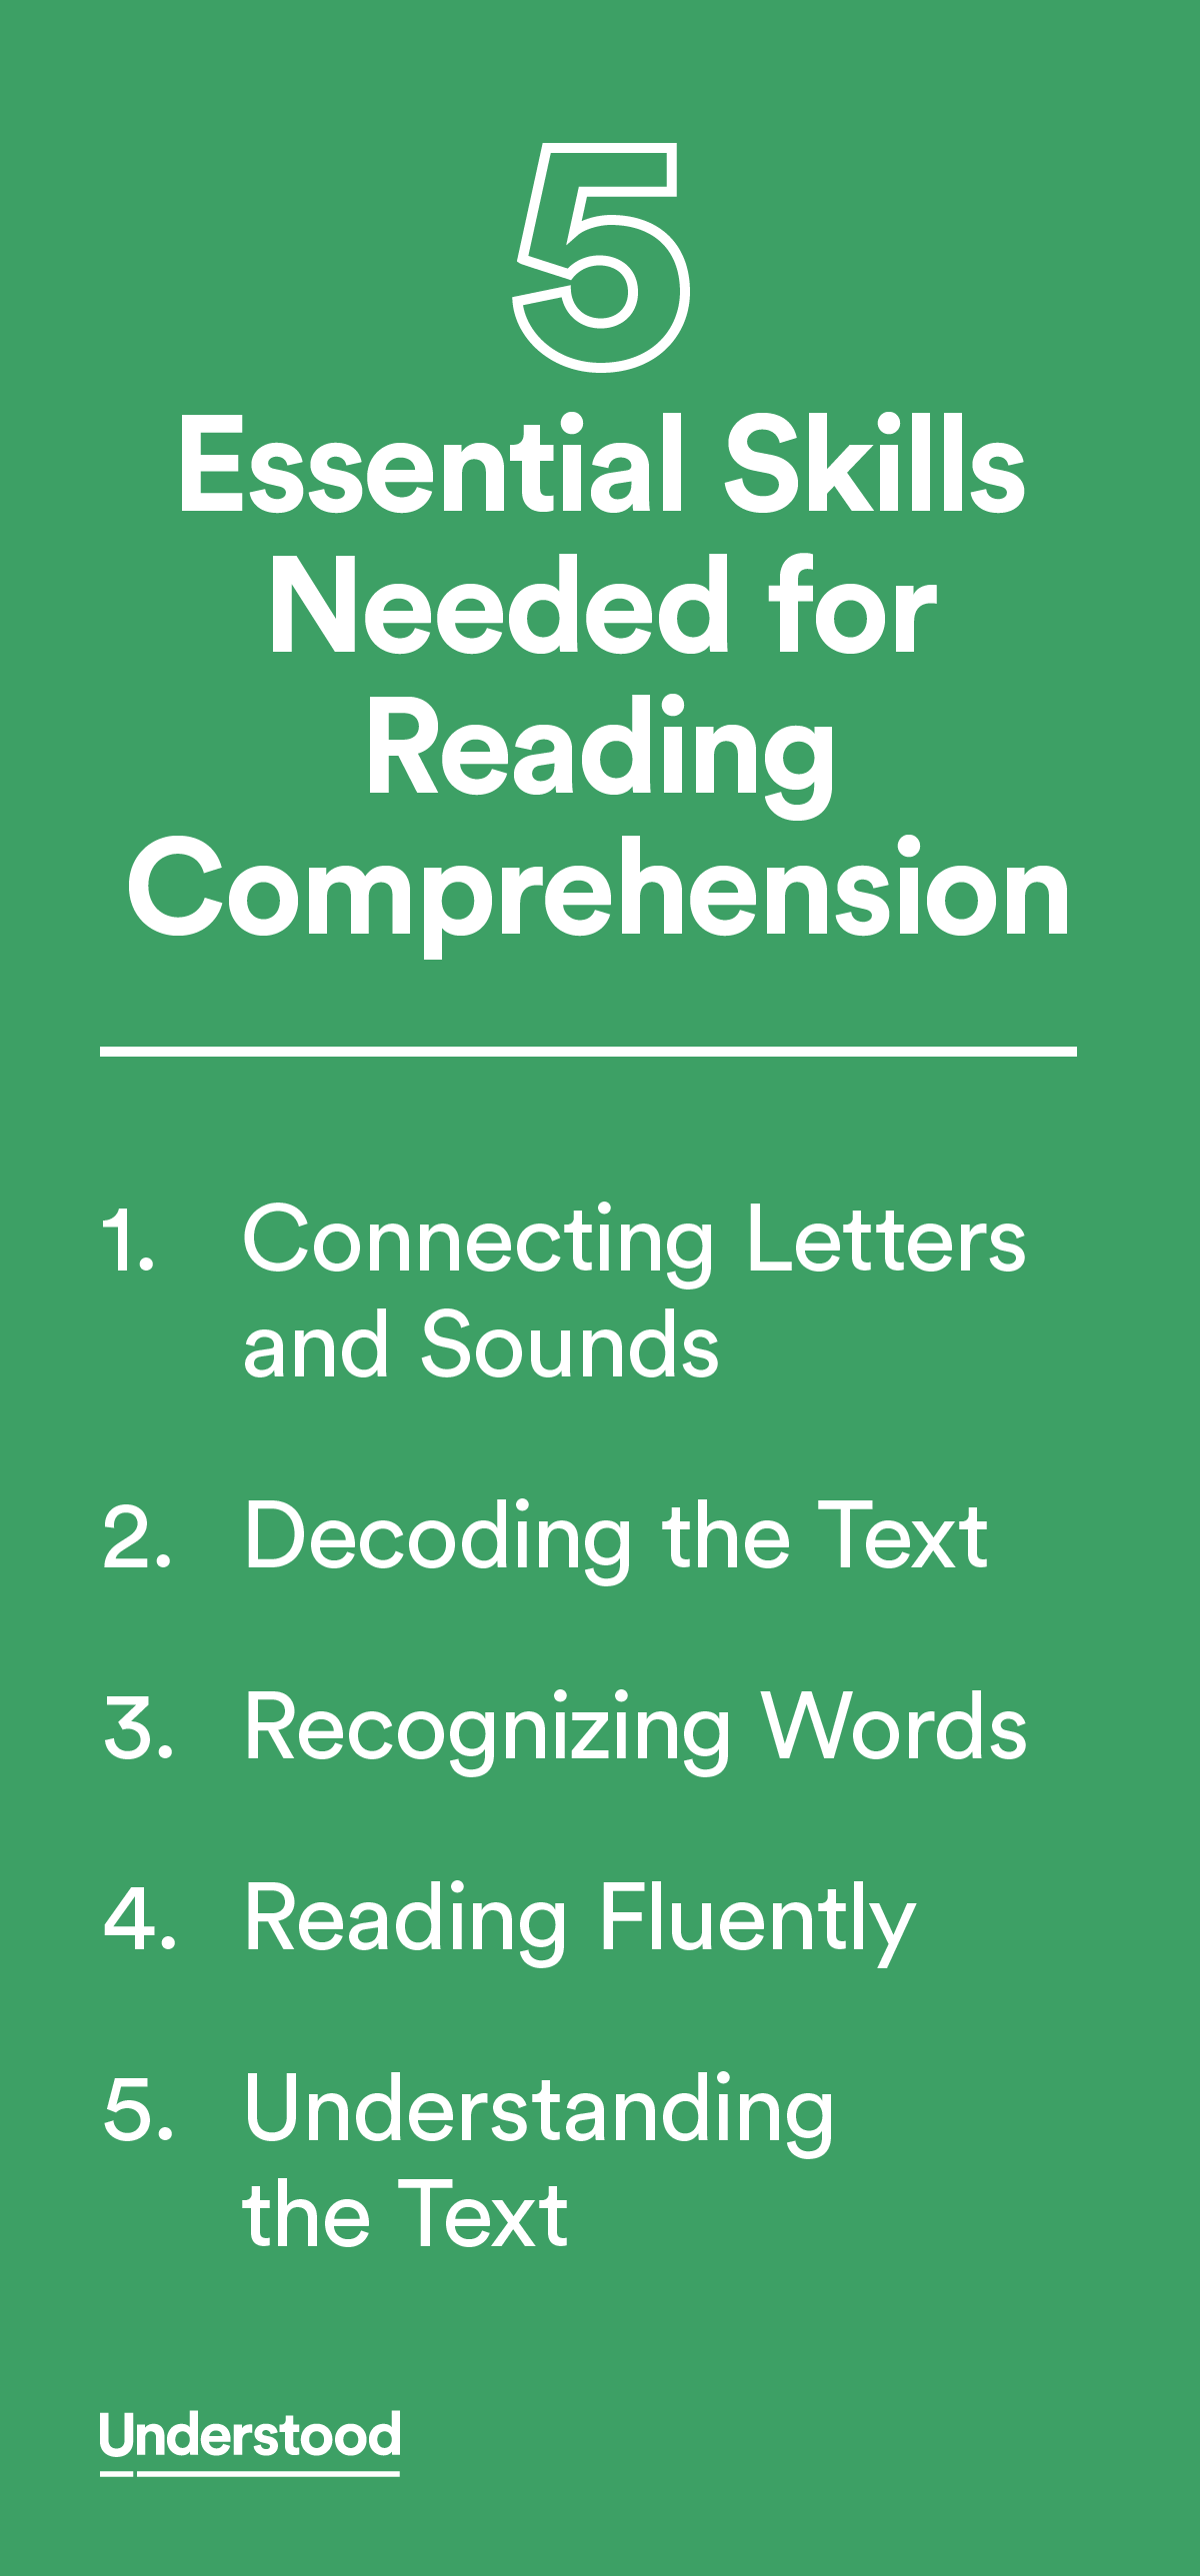 5 Essential Skills Needed For Reading Comprehension